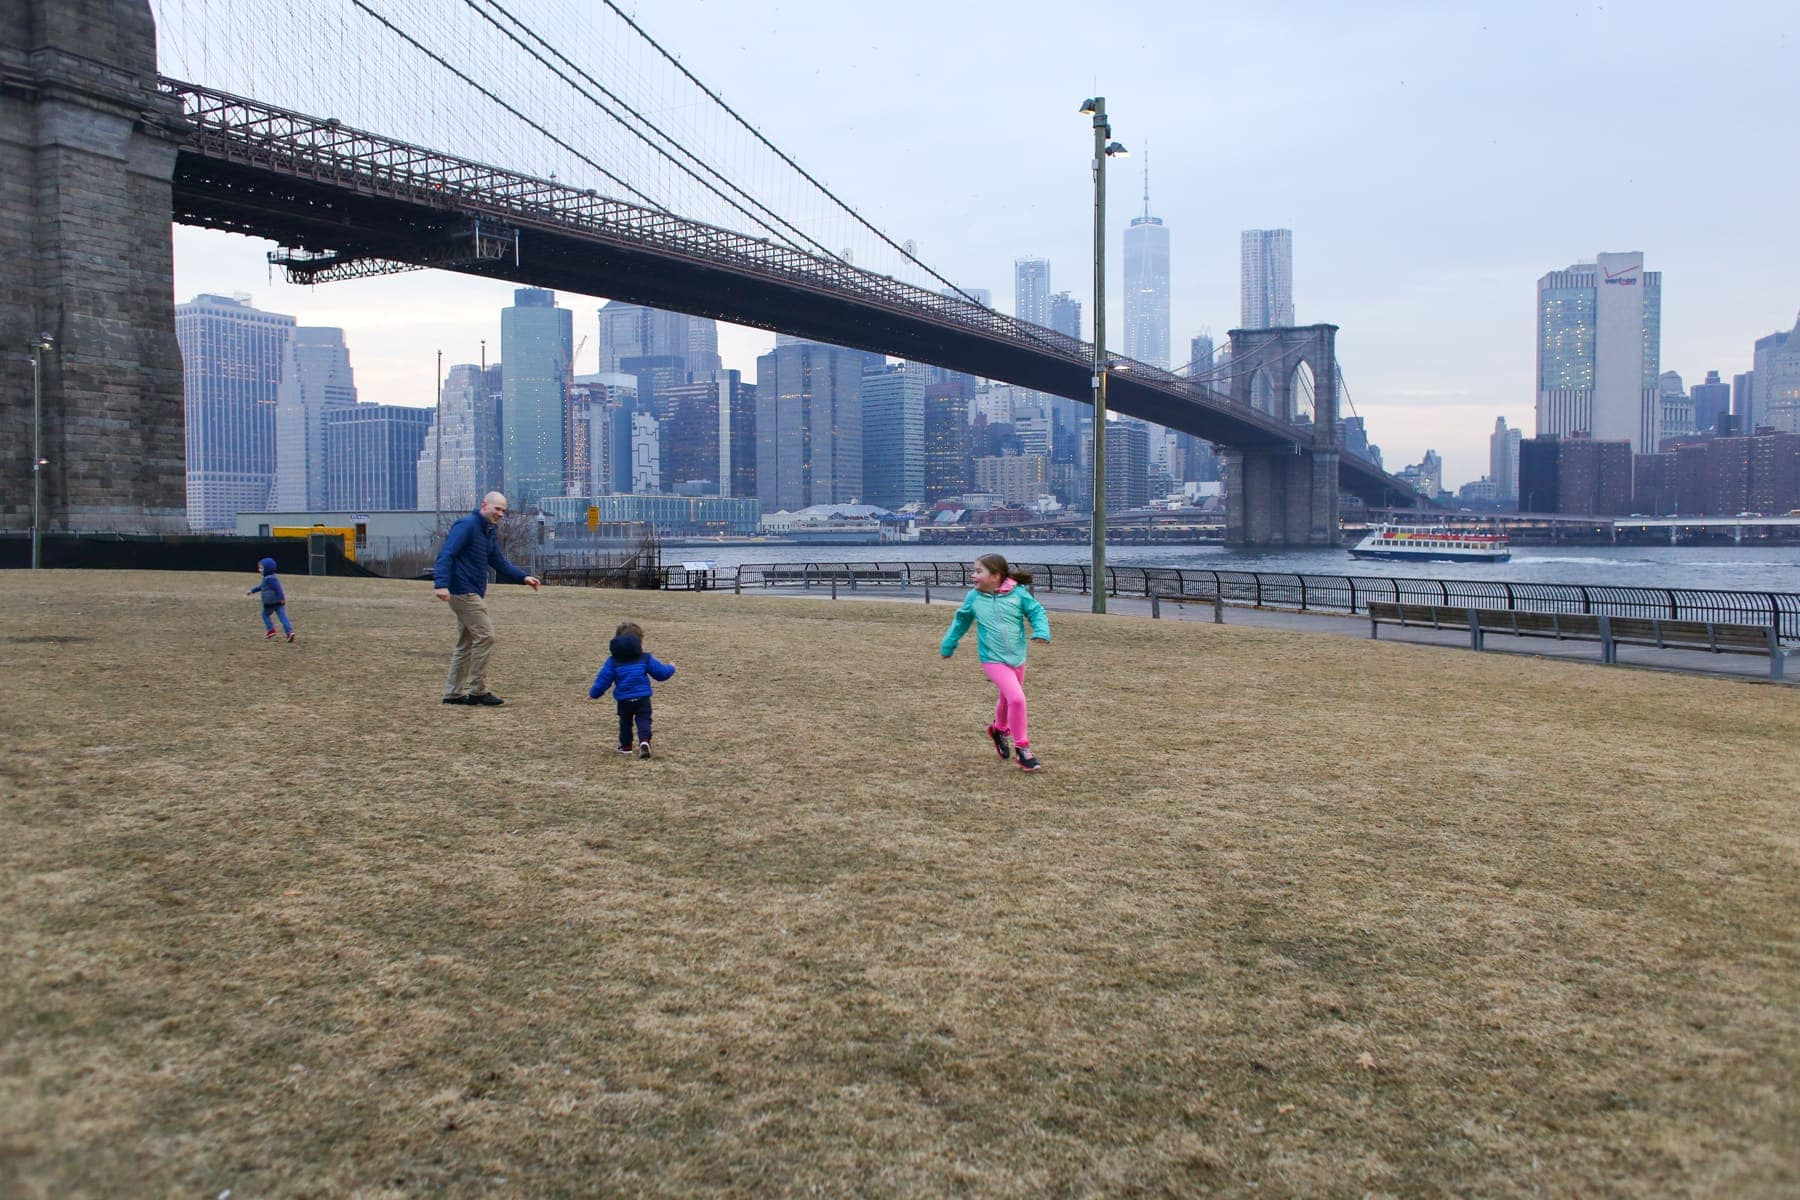 Brennan family playing in the grass with a bridge and city behind them